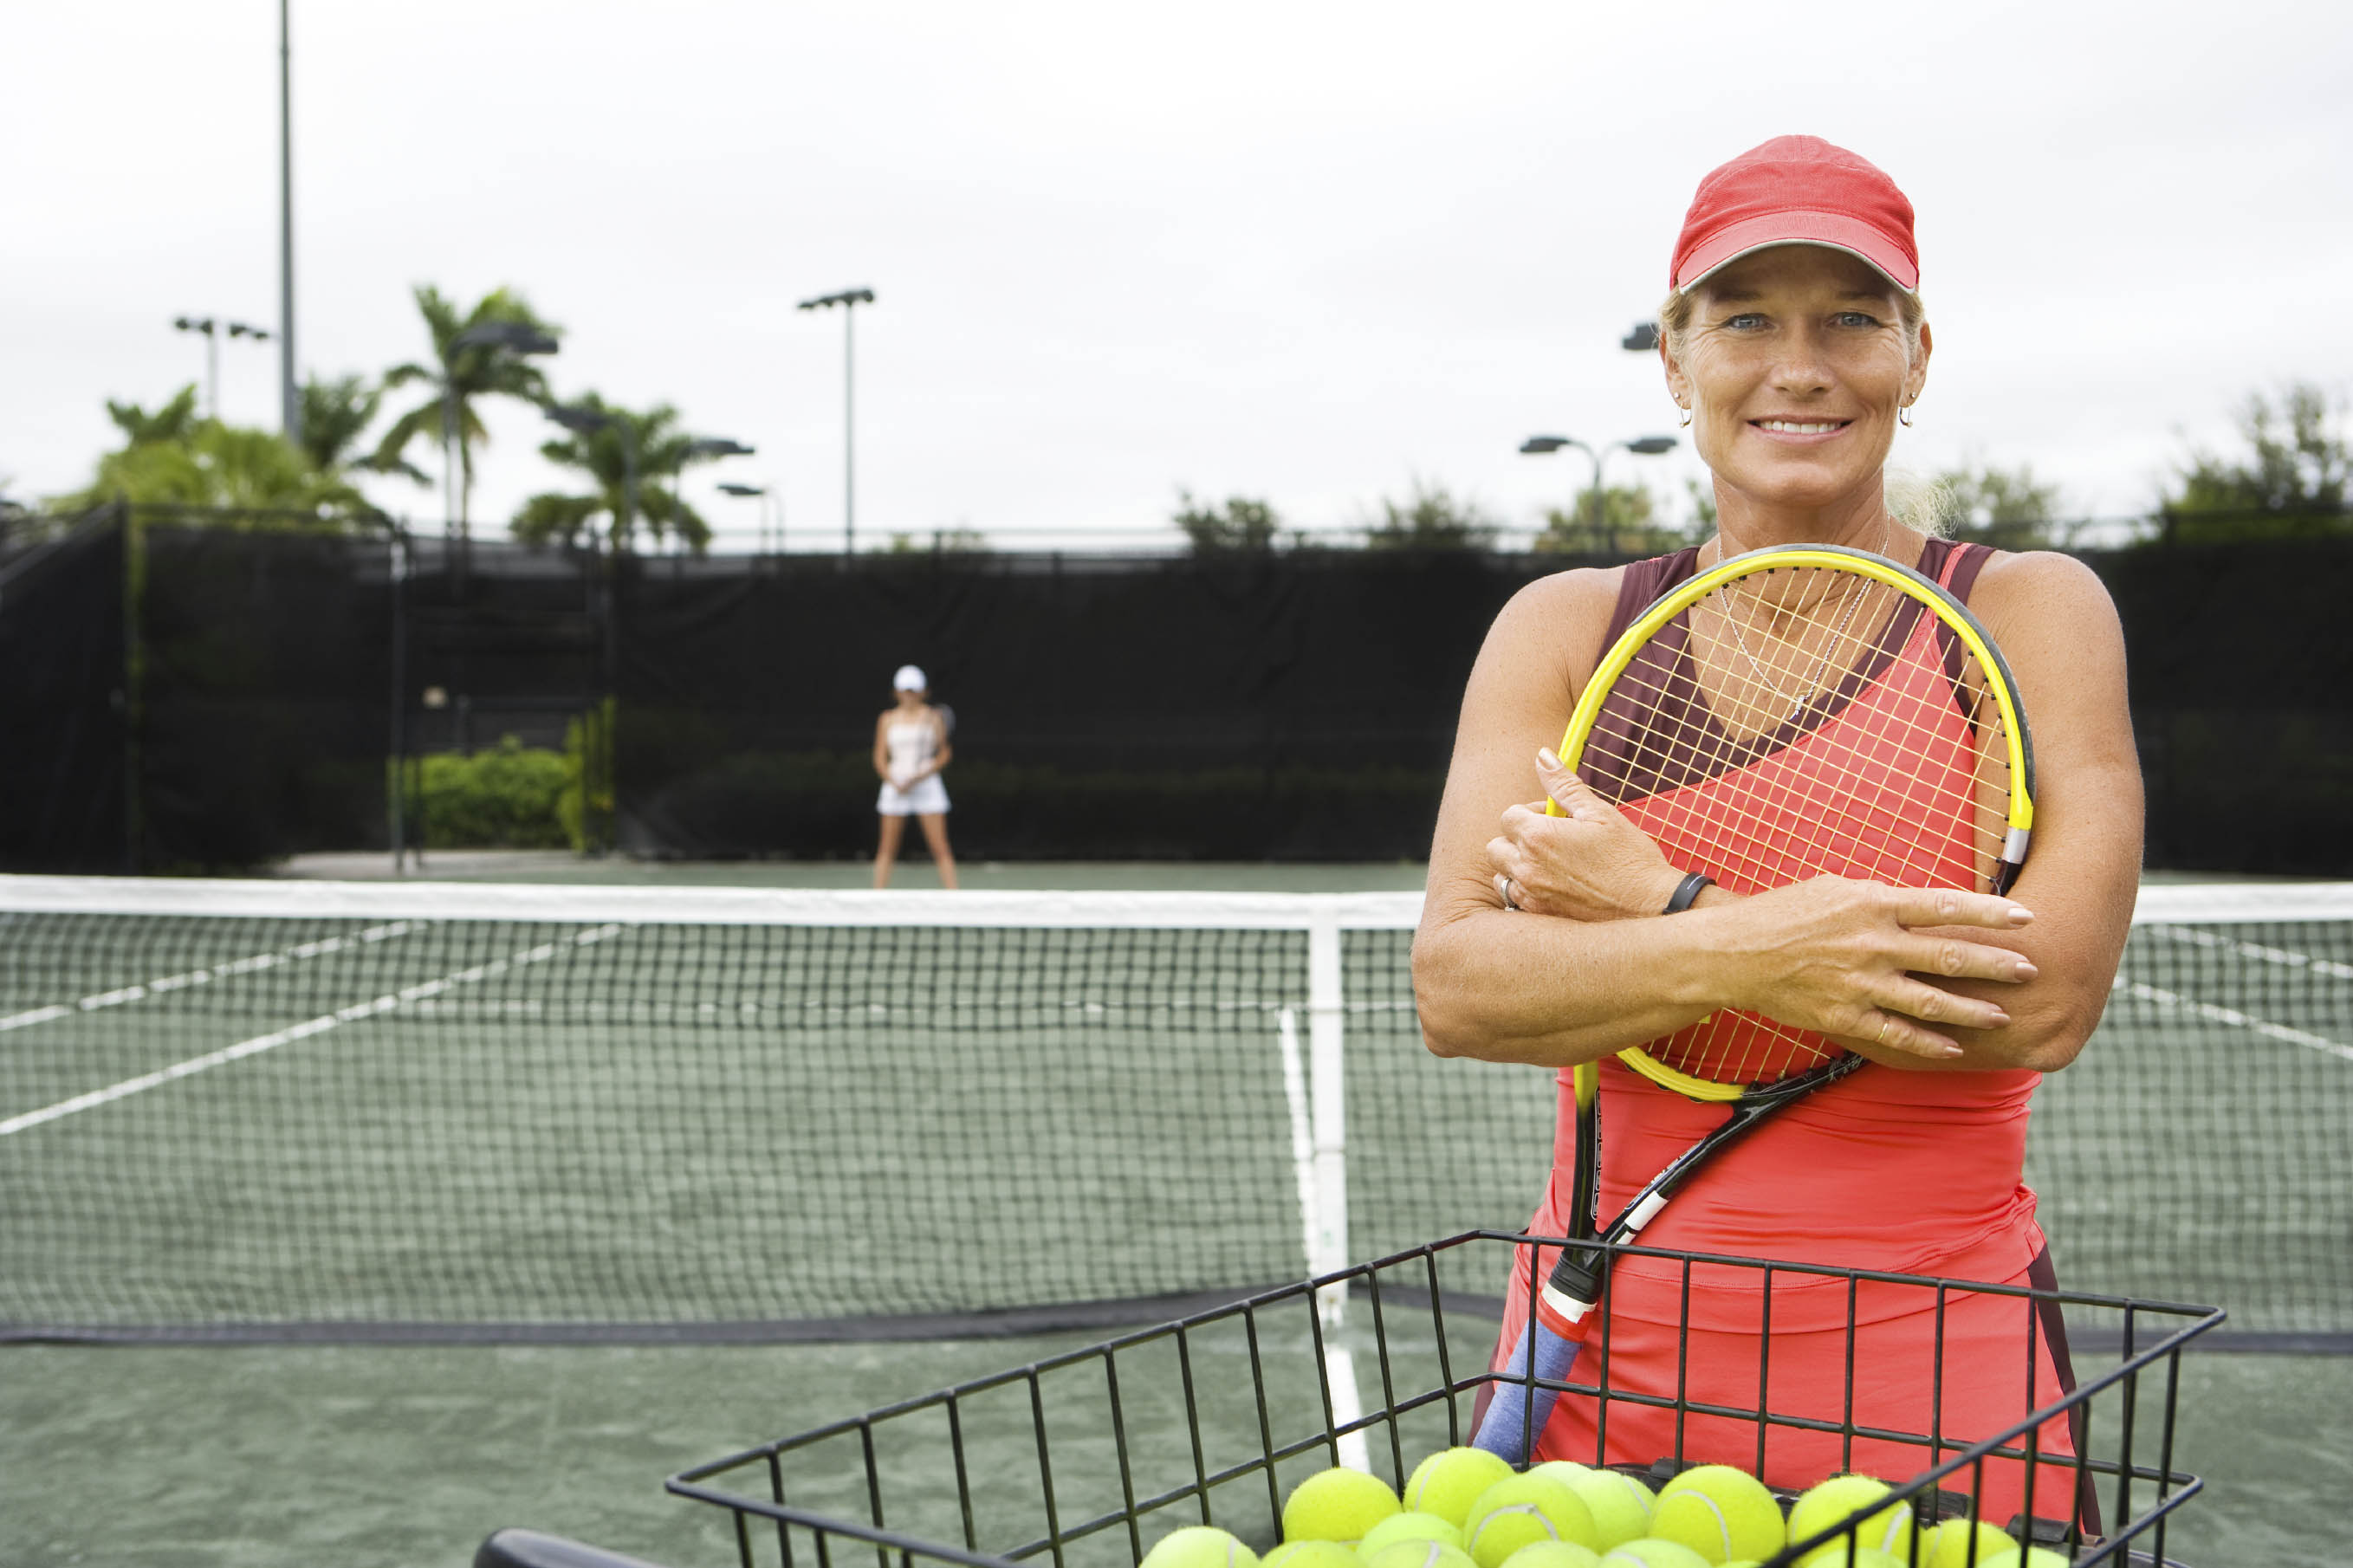 Top 10 Health Benefits of Playing Tennis for Women